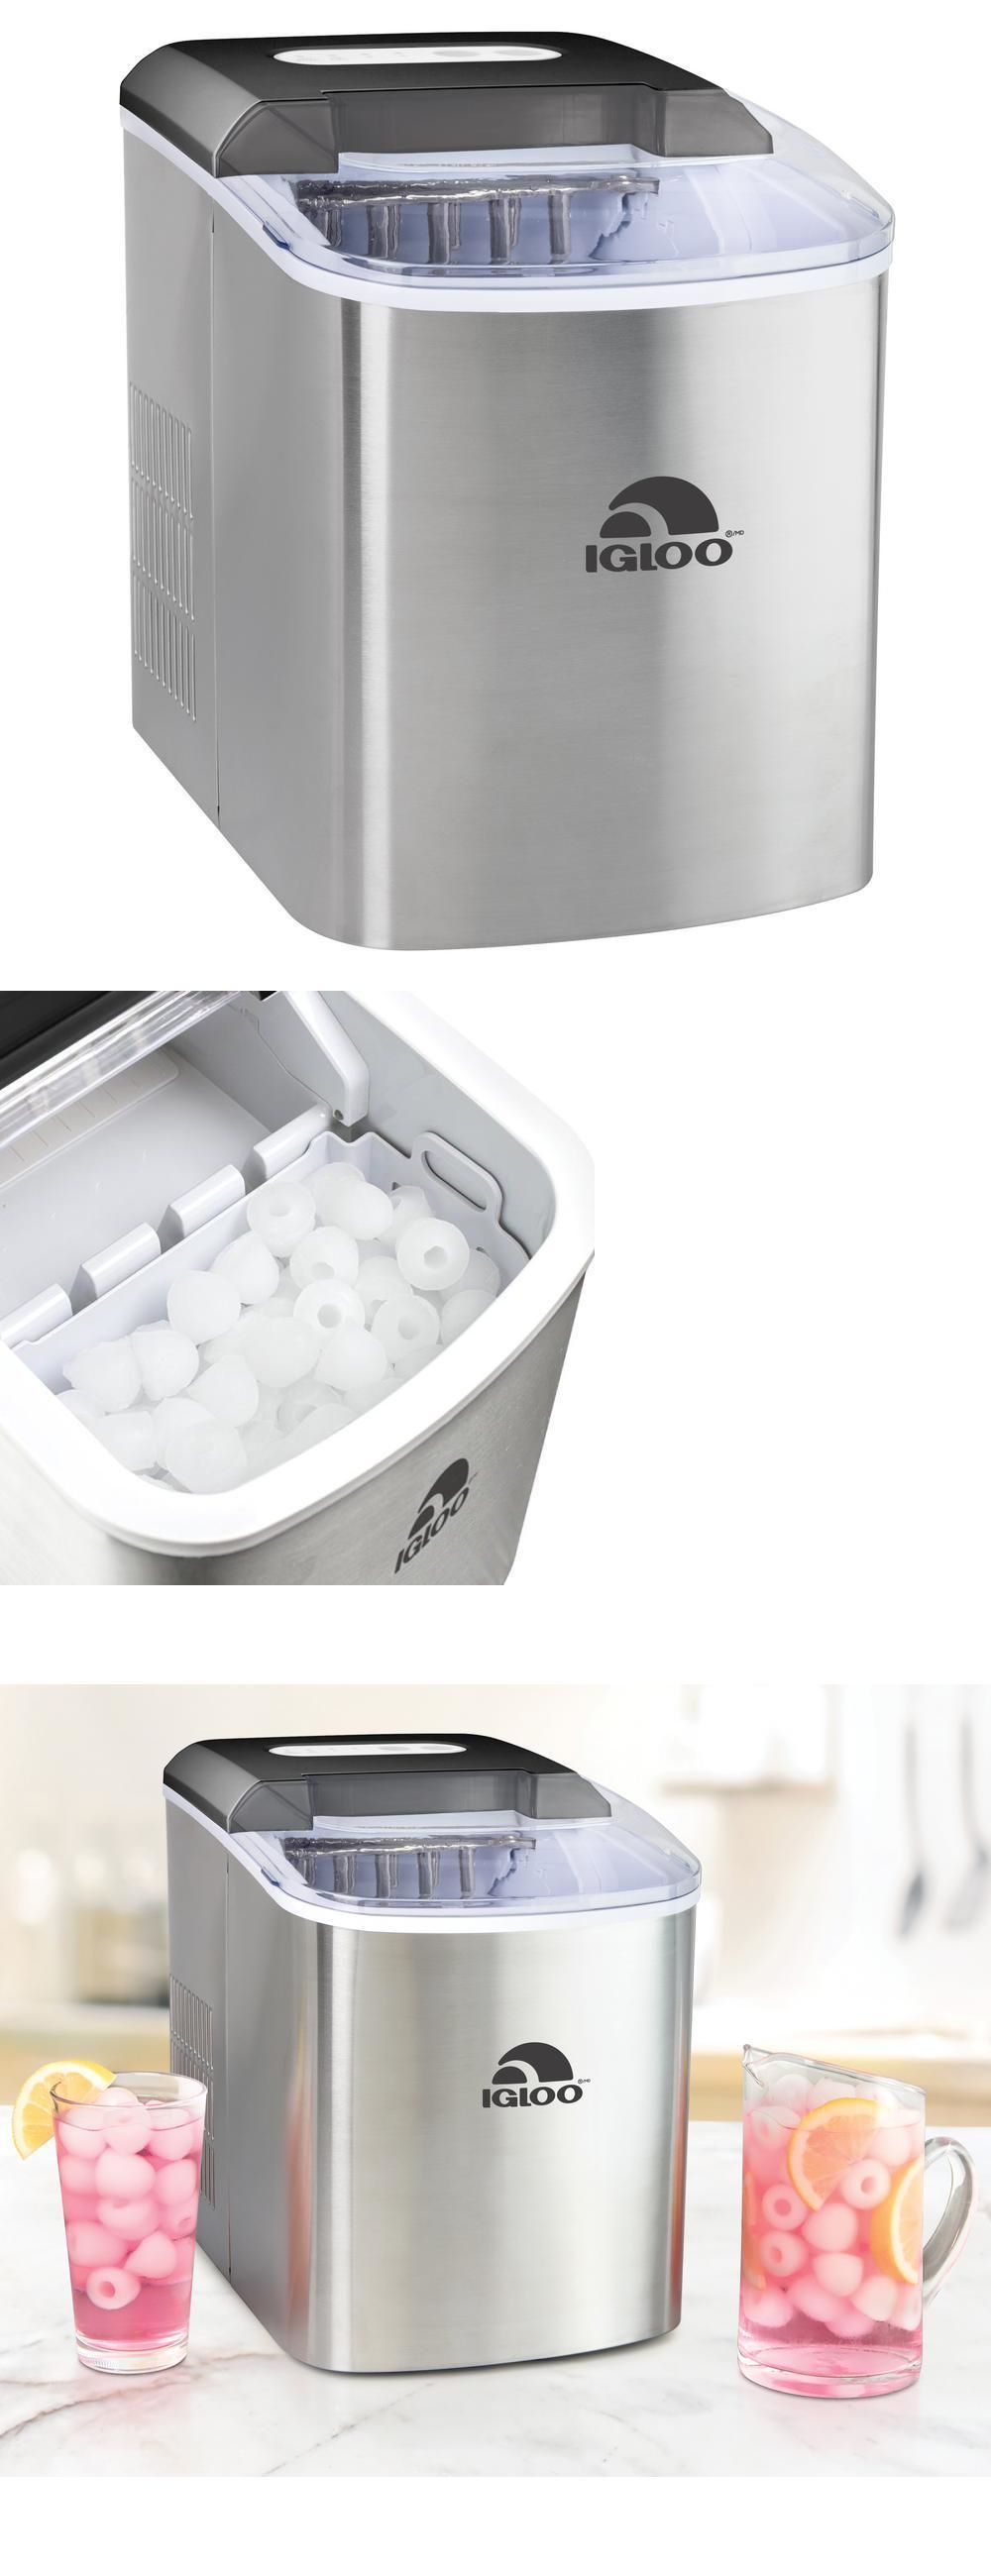 Countertop Ice Makers 122929 Igloo Iceb26ss 26 Pound Automatic Ice Maker Stainless Steel Buy It Now Only 142 Automatic Ice Maker Ice Maker Countertops